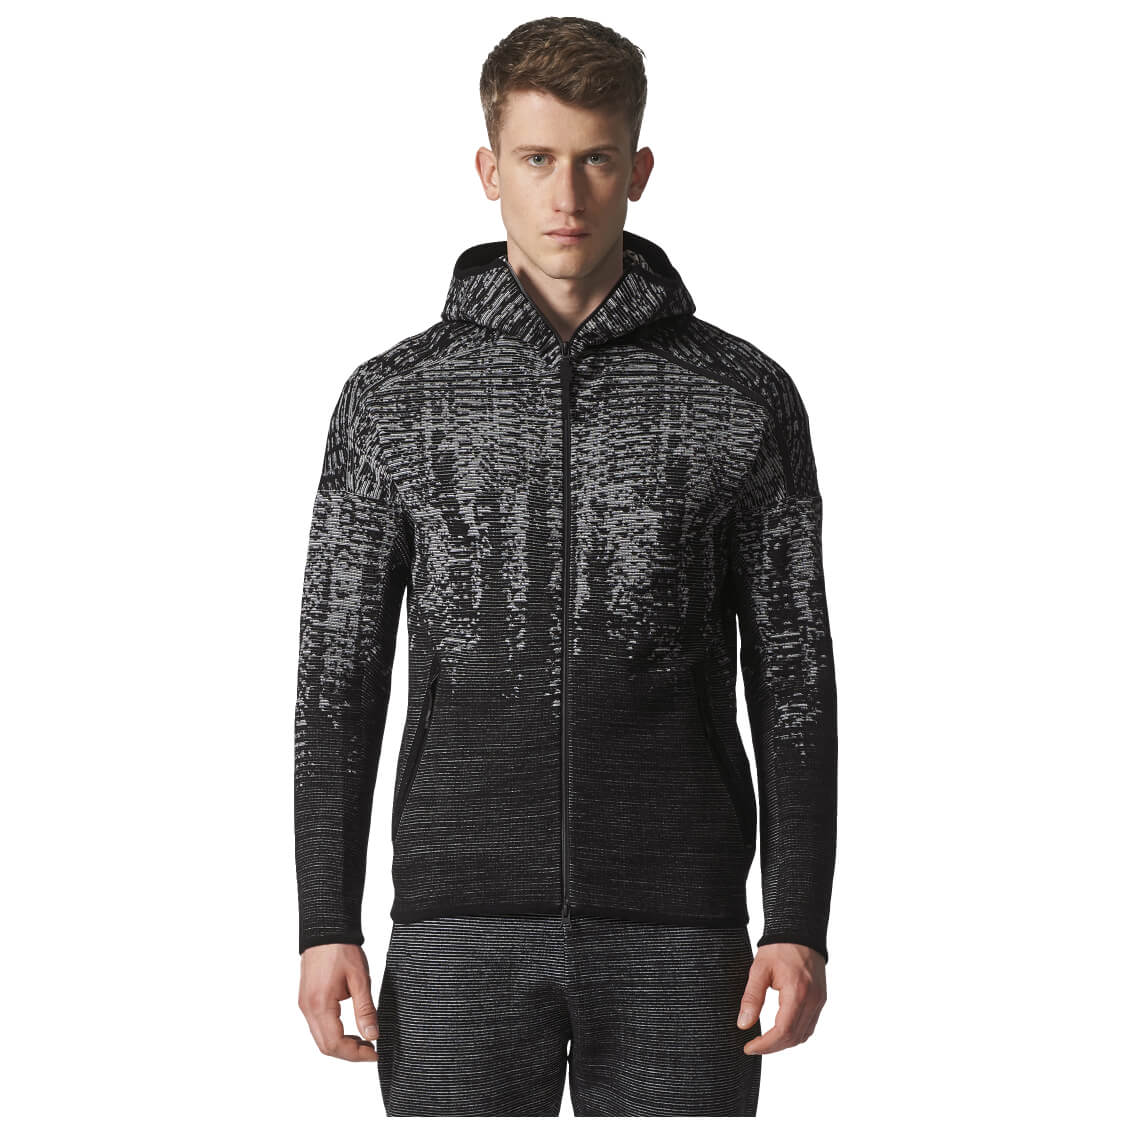 adidas zne pulse kn hoody sweat jackets tracksuit tops. Black Bedroom Furniture Sets. Home Design Ideas